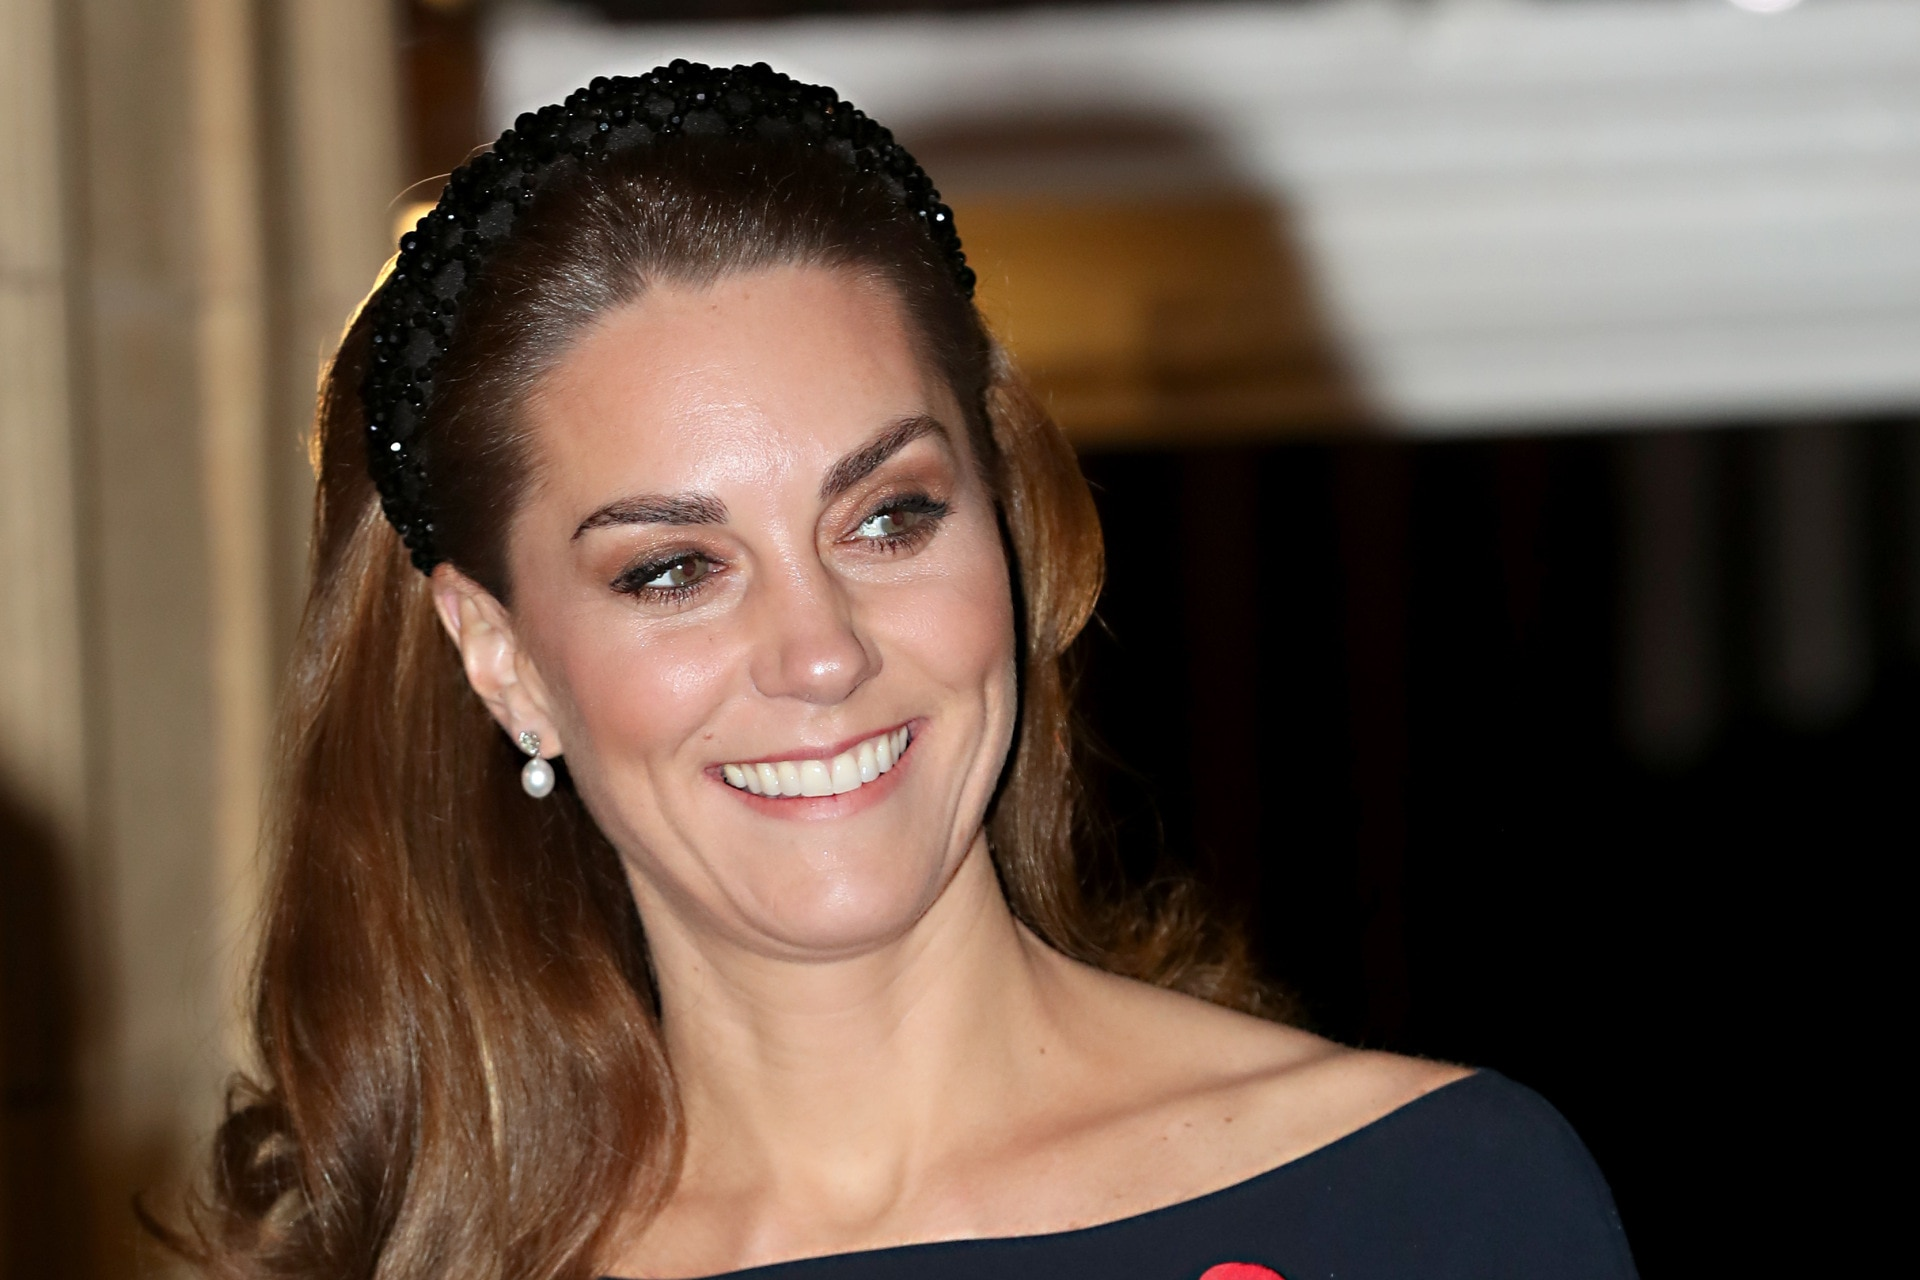 Kate Middleton proves a $34 Zara headband is the accessory of the season